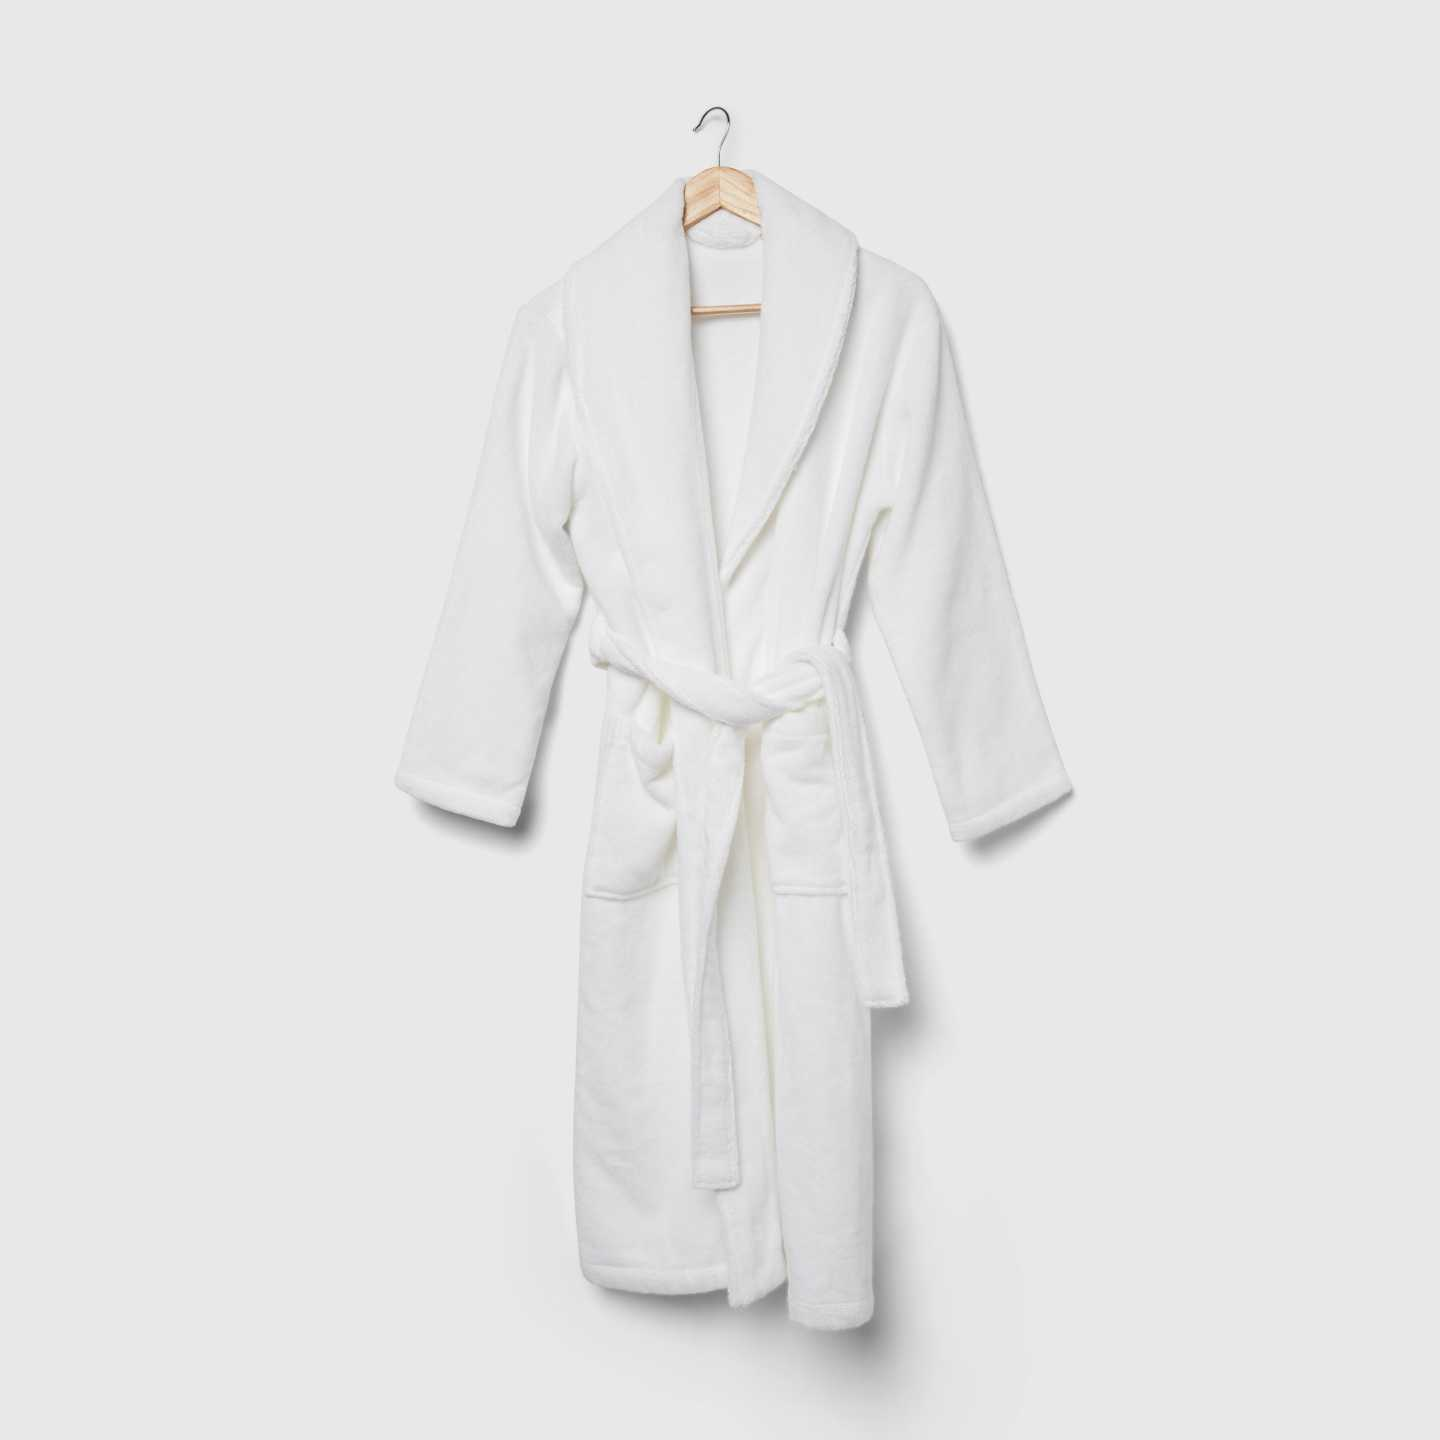 You May Also Like - Organic Luxe Turkish Cotton Bath Robe - White